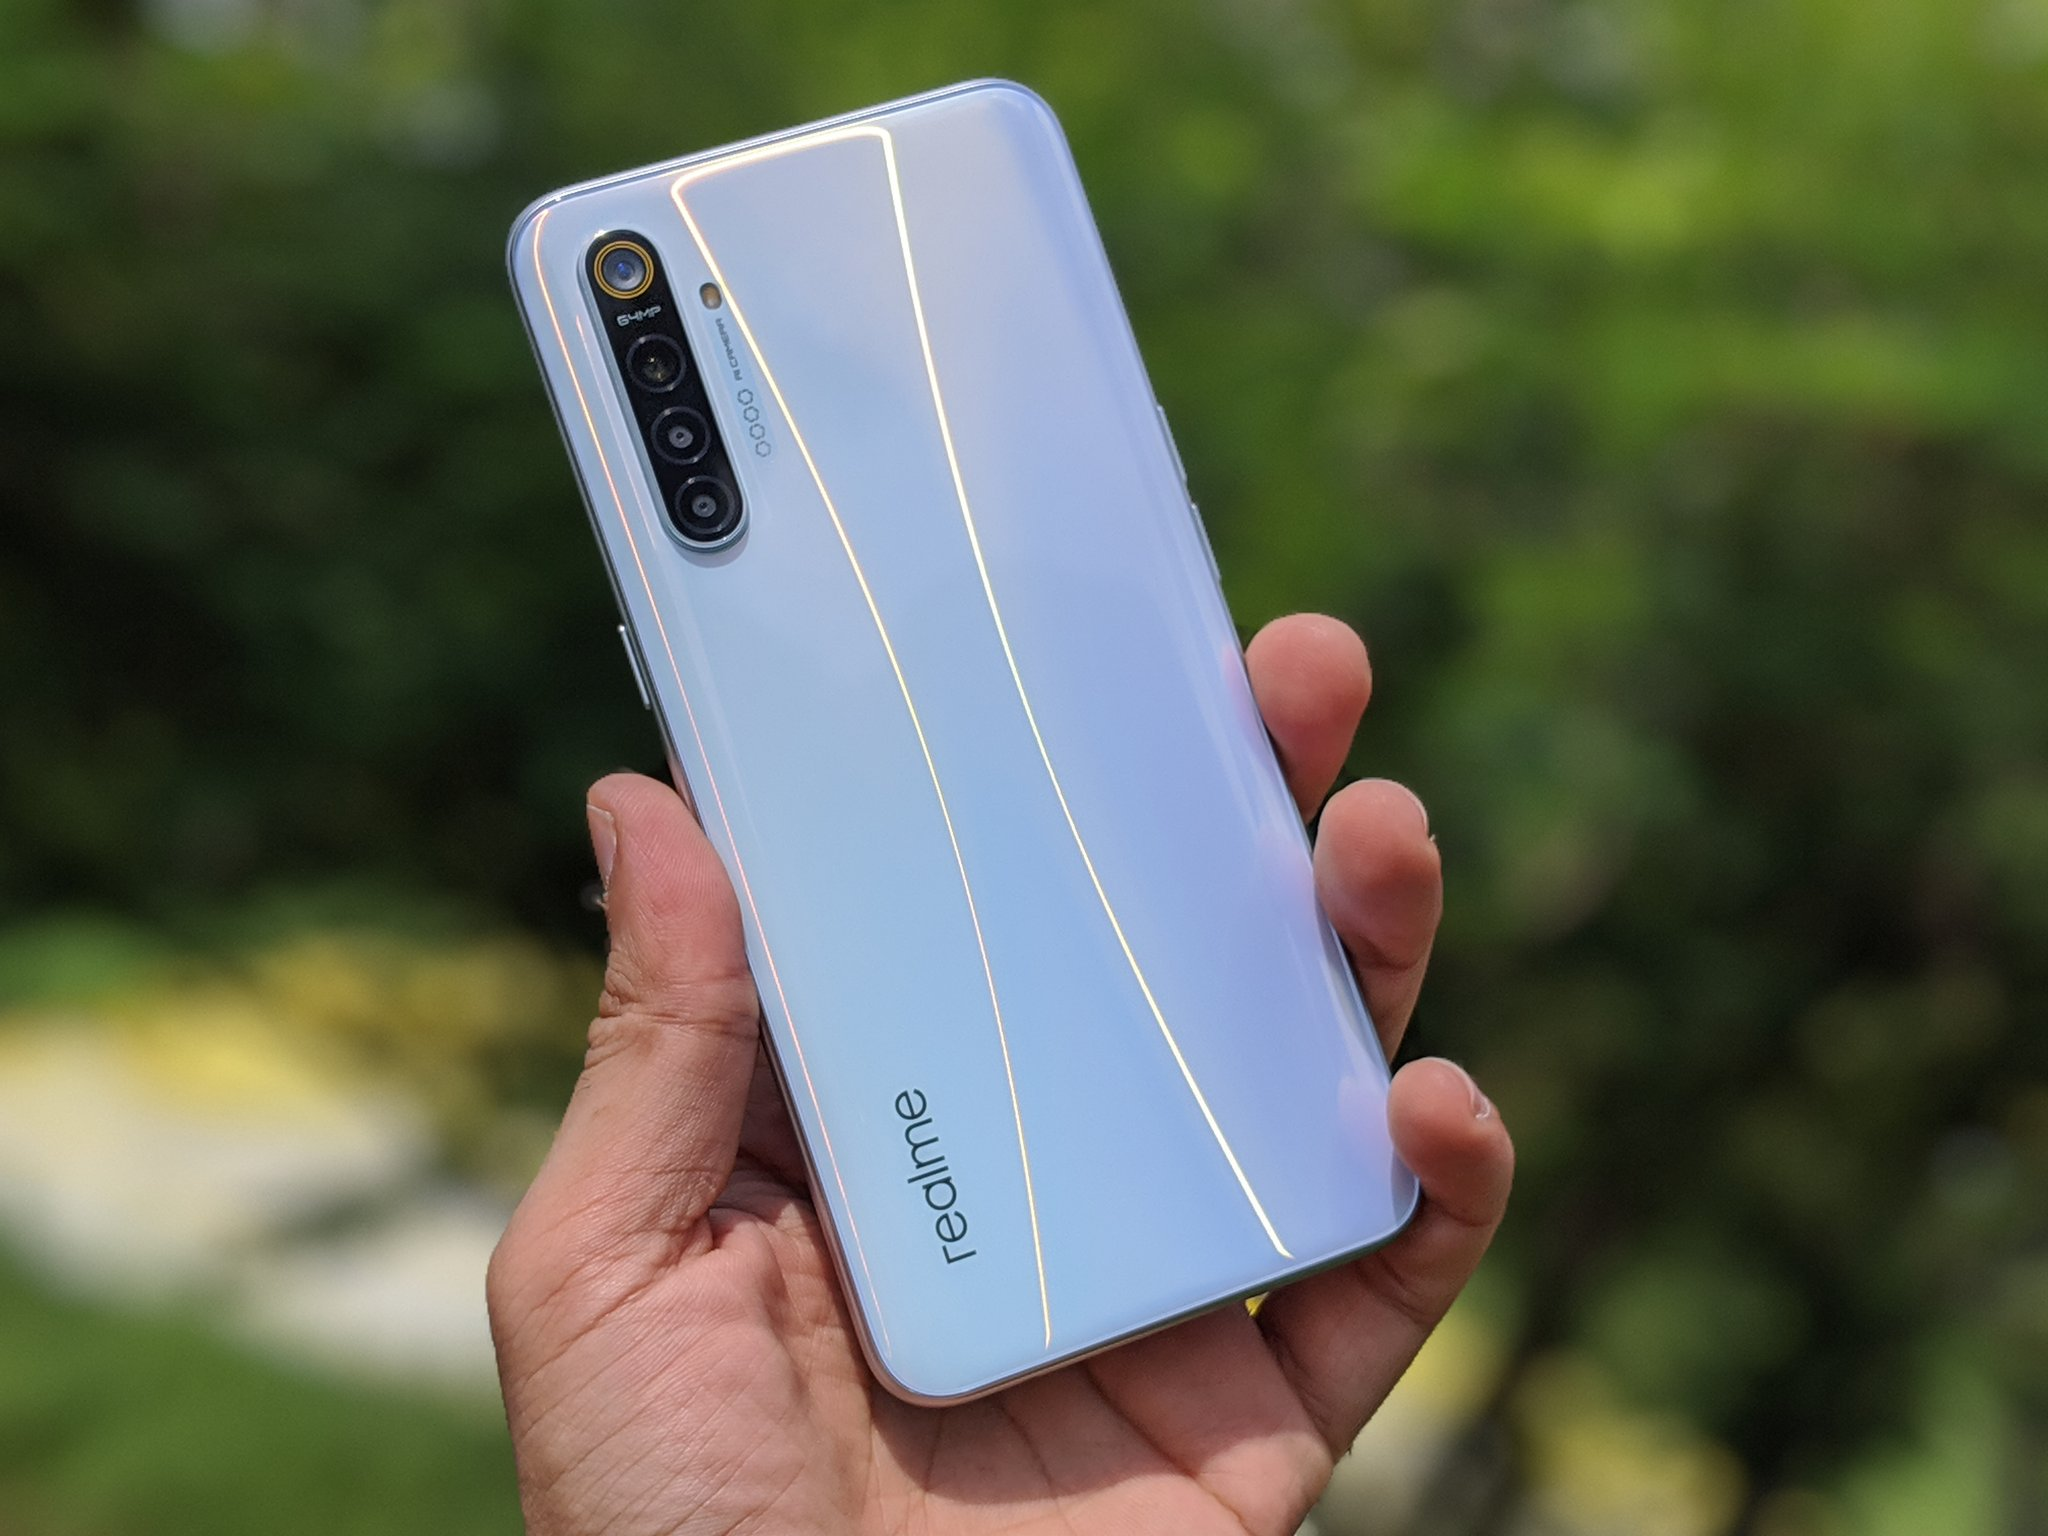 Realme XT with a 64MP camera officially shown-off